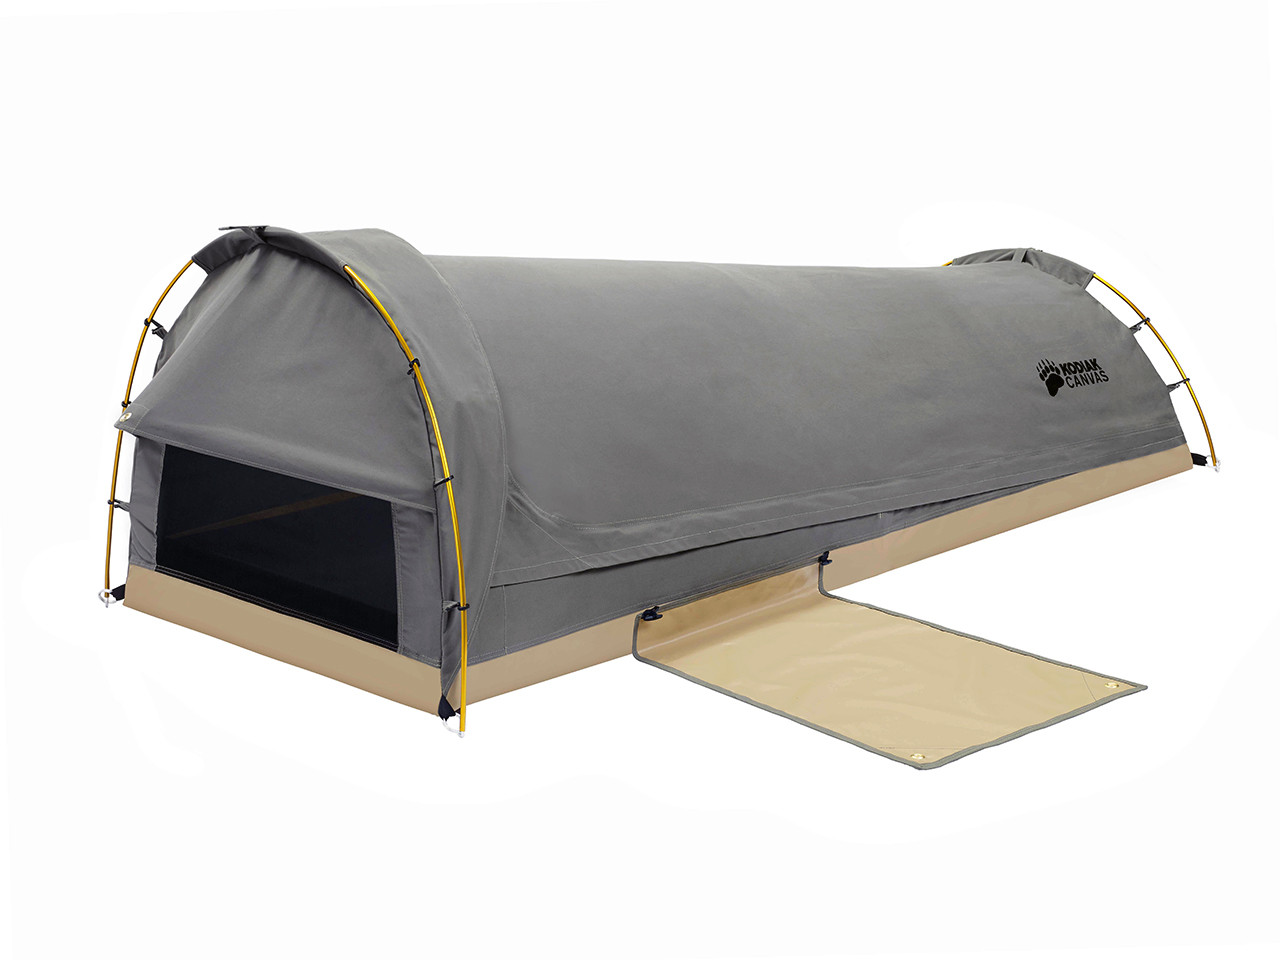 Swag 1 Person Canvas Tent - Estimated Restock Date Jun. 30th, 2021